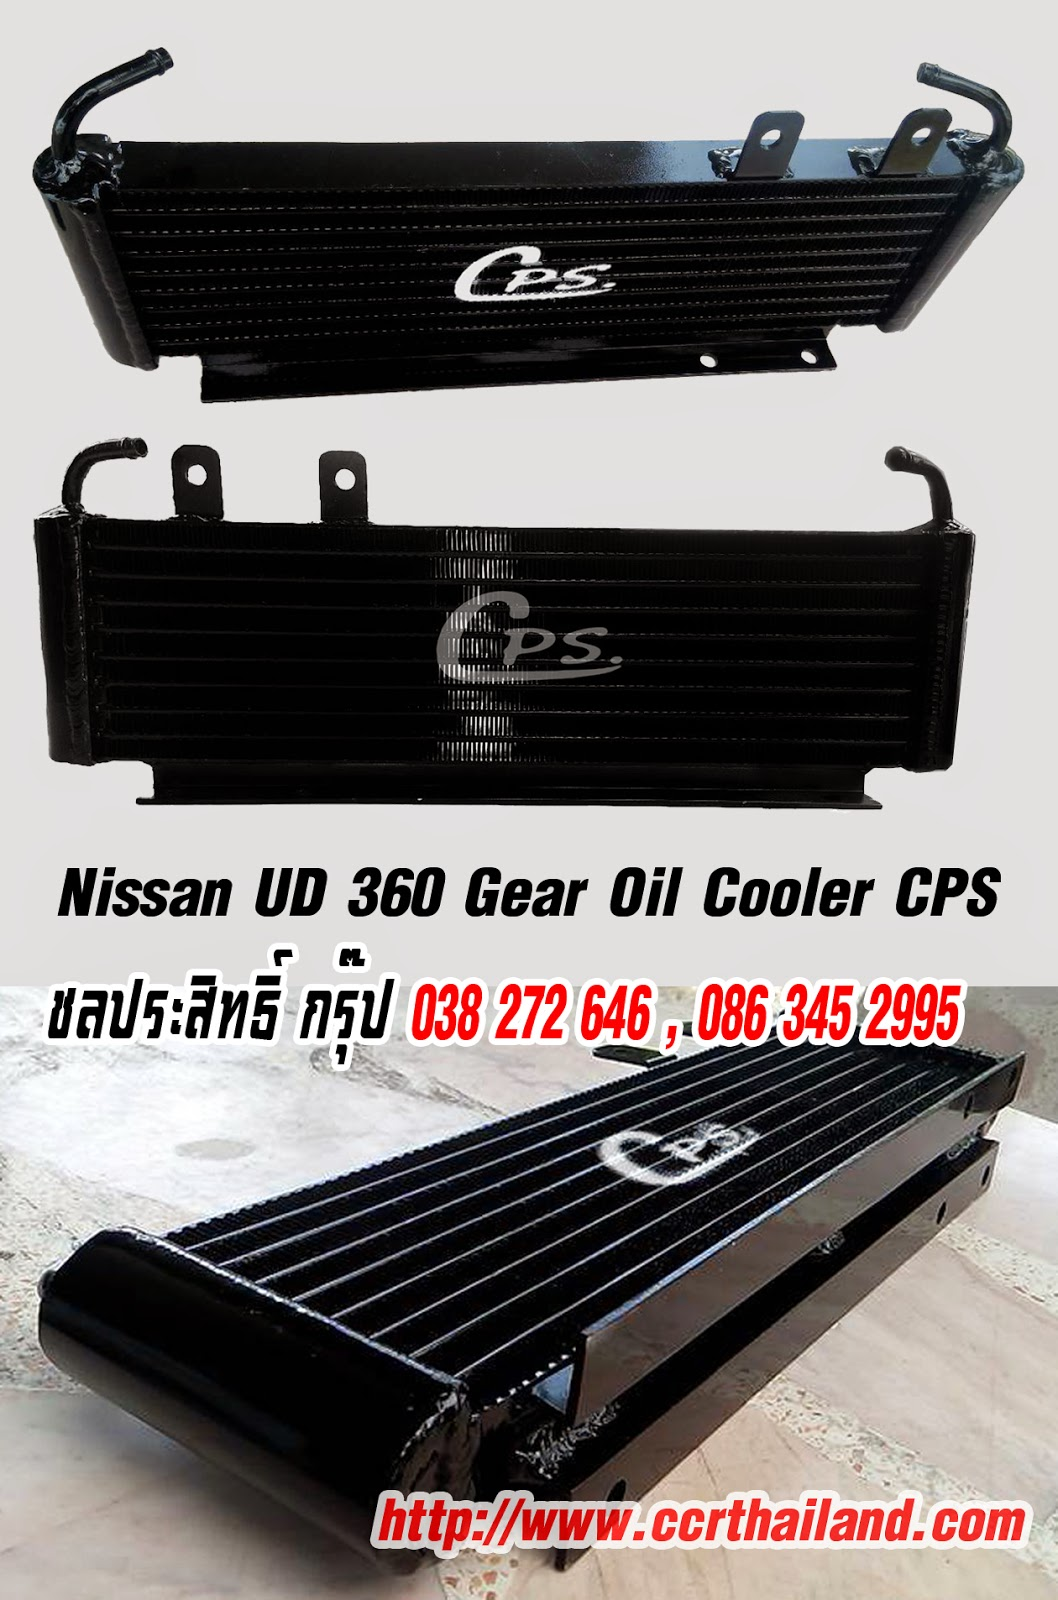 Nissan UD 360 Gear Oil Cooler CPS